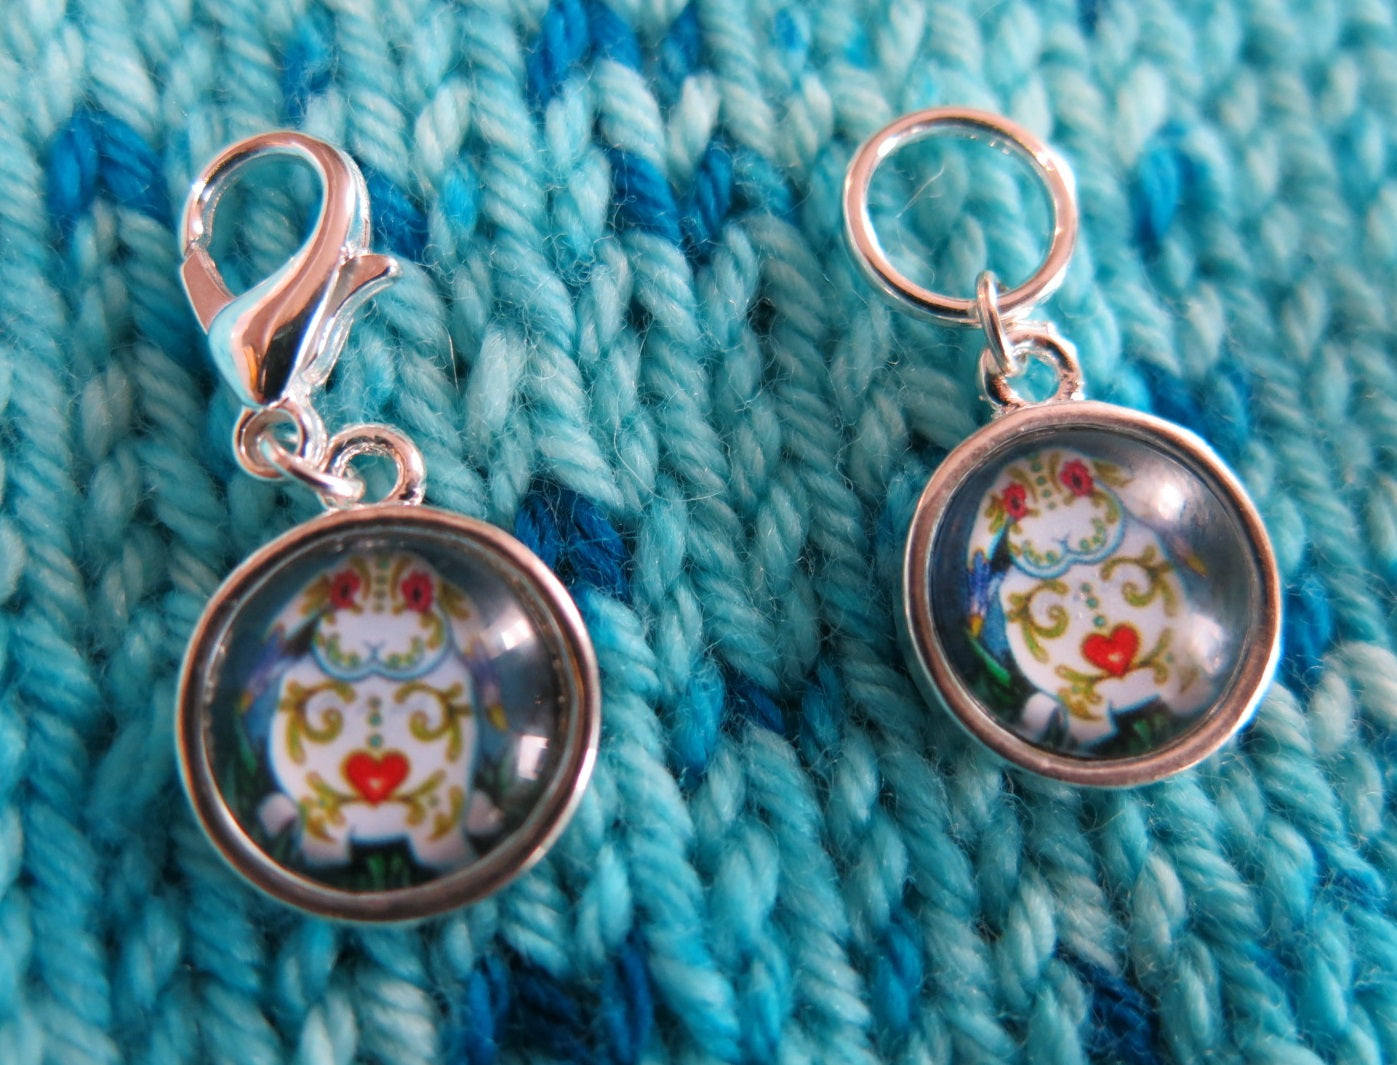 sugar skull rabbit charm on a clasp or snagless ring